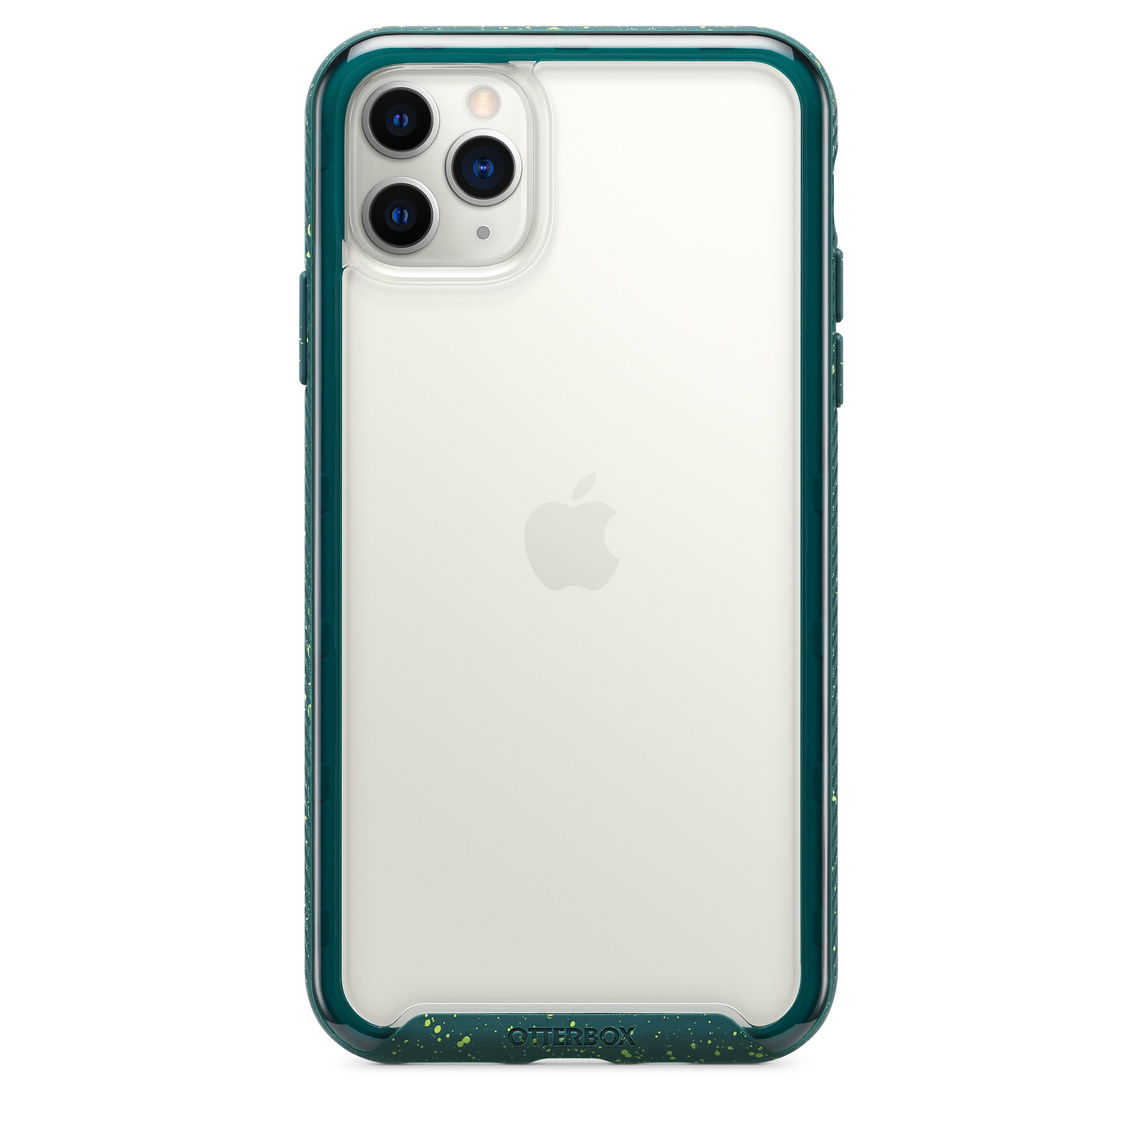 Coque avant arriere iphone 11